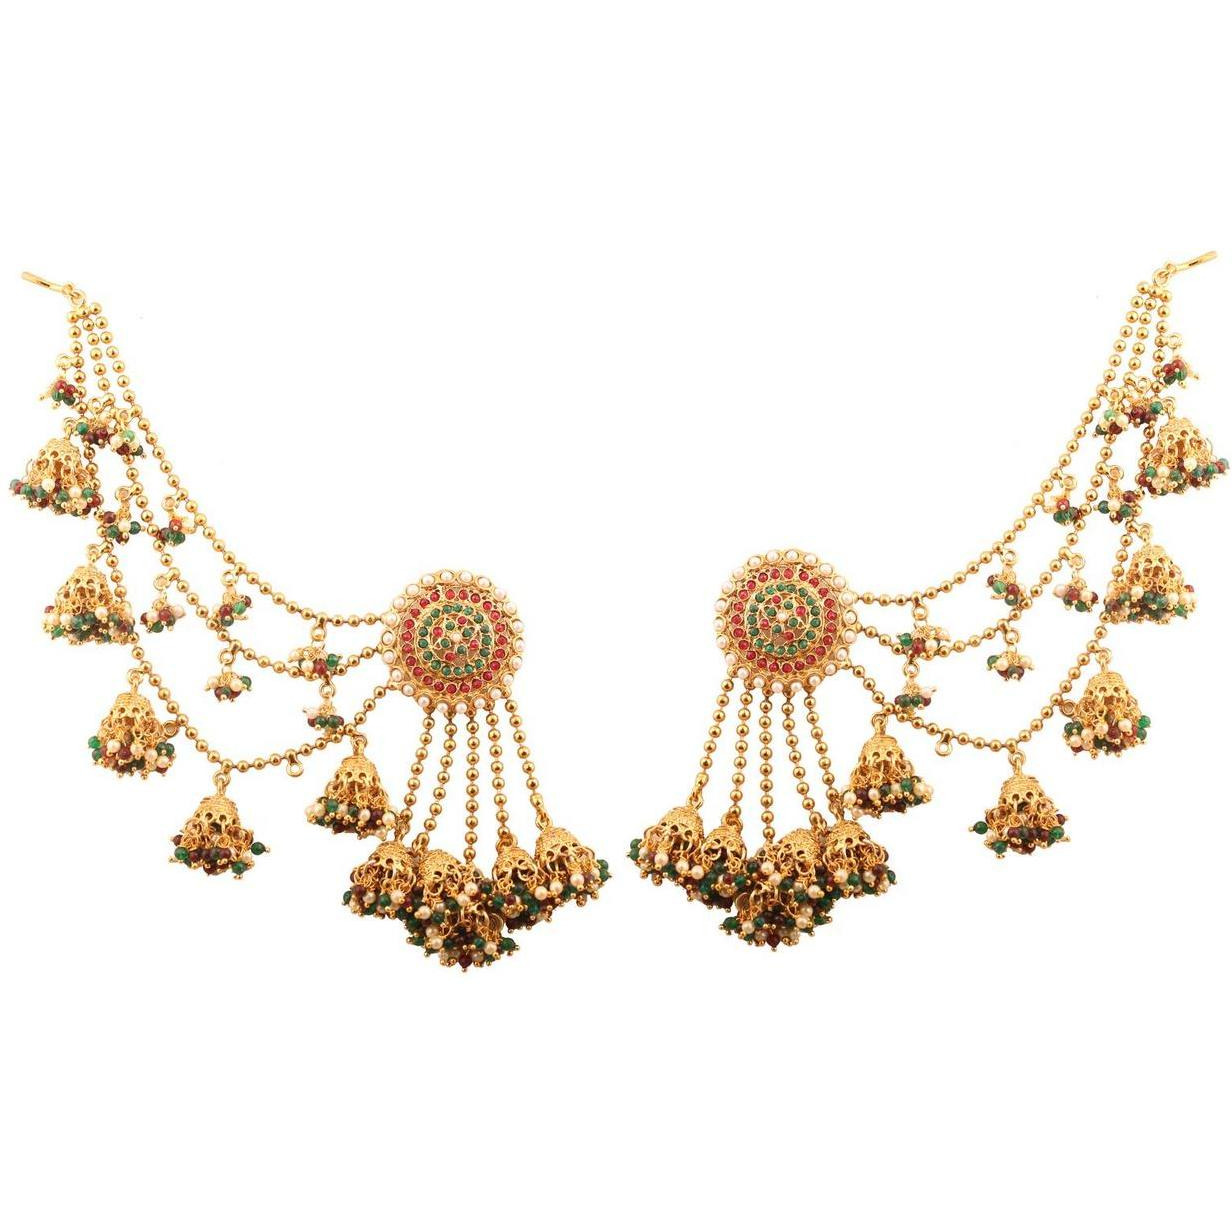 Indian Devsena Bahubali multi color beads earrings in antique gold tone for women